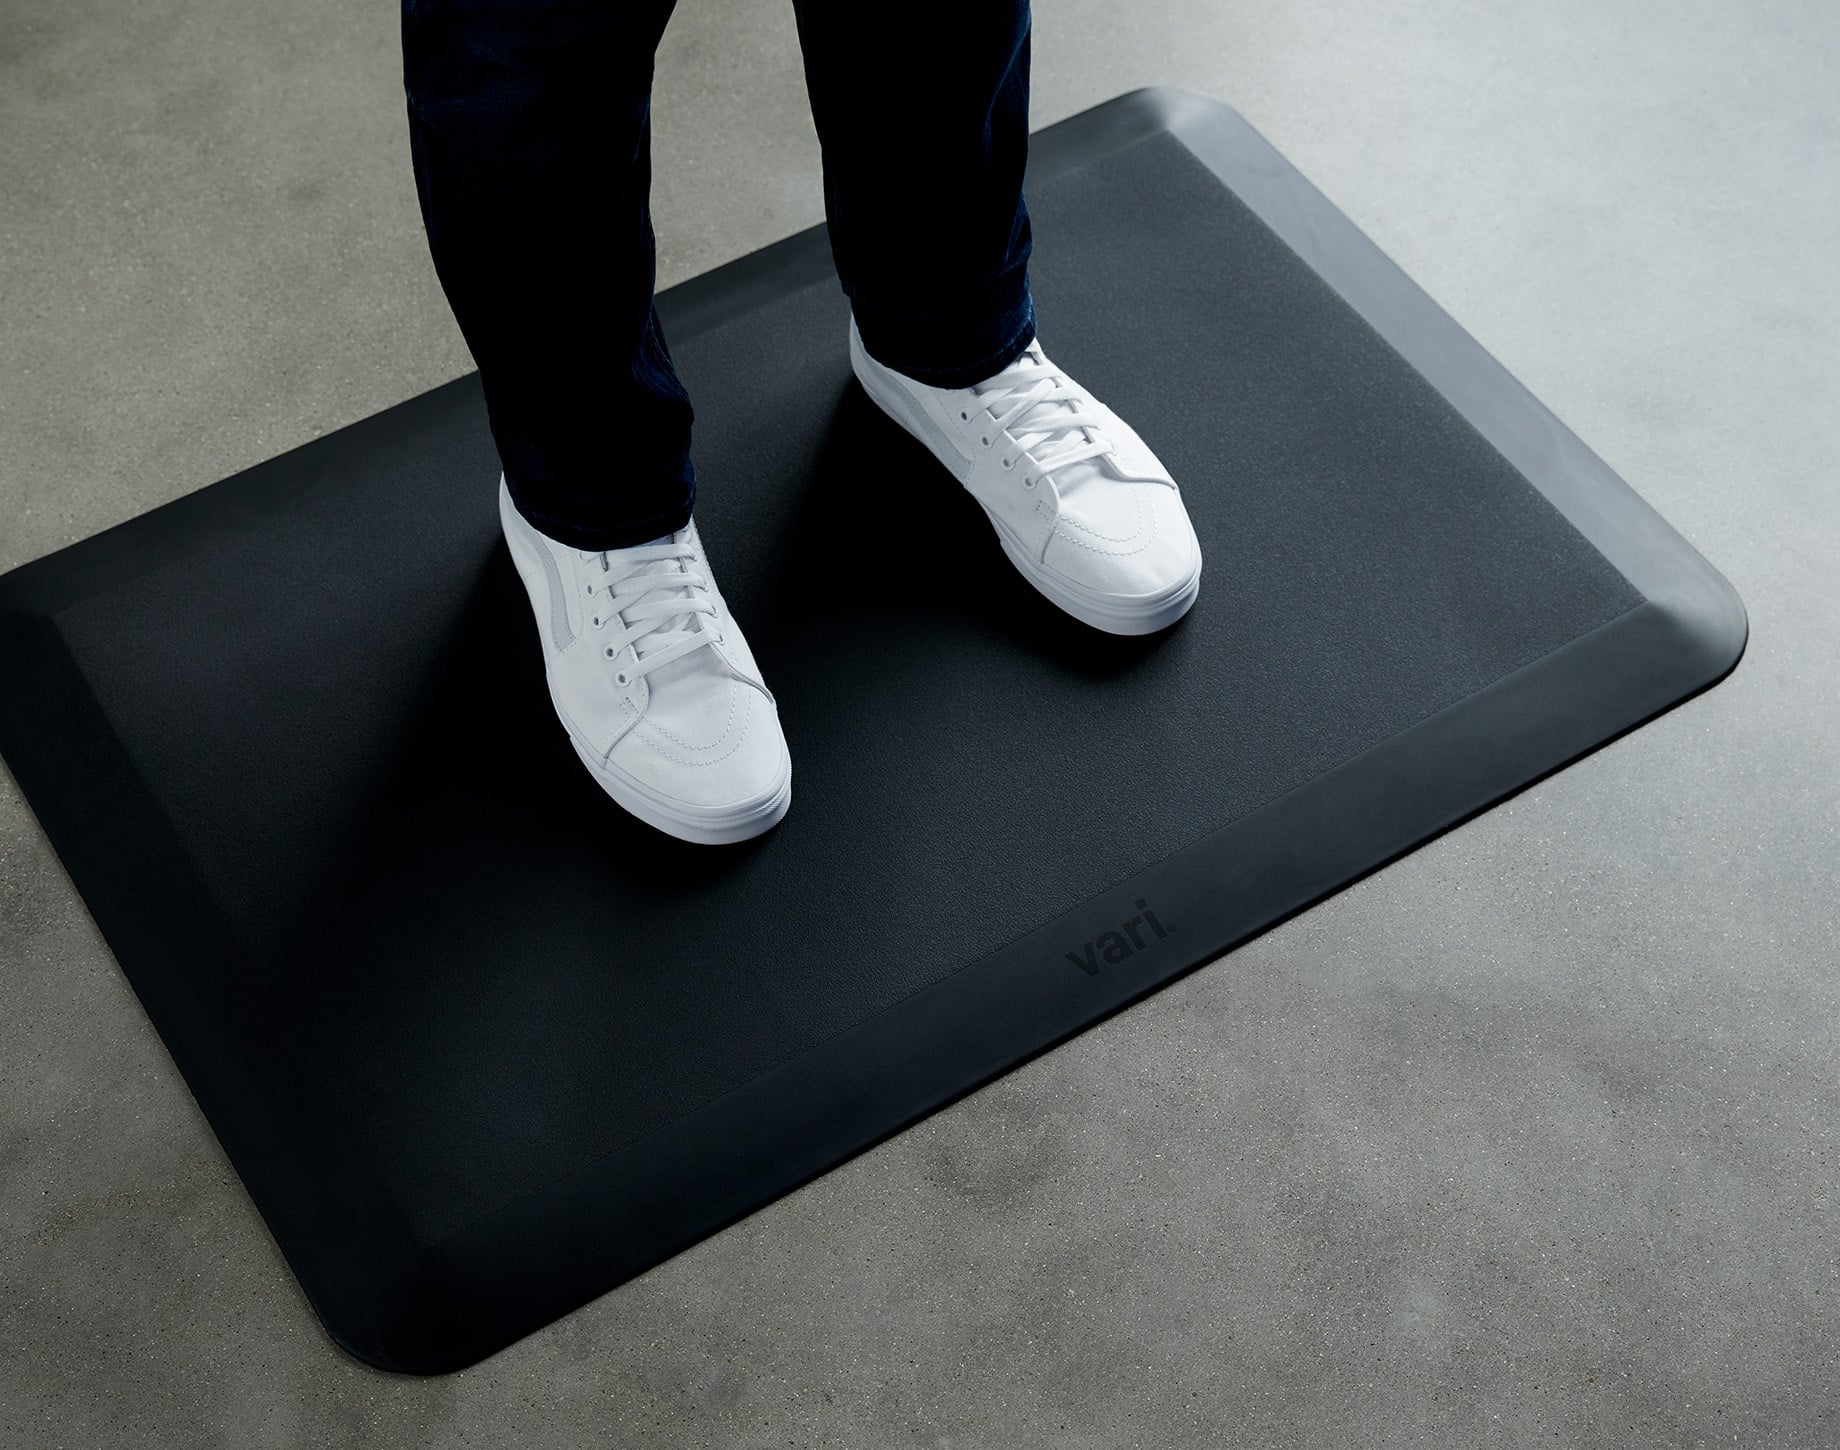 two feet on a standing mat in sneakers